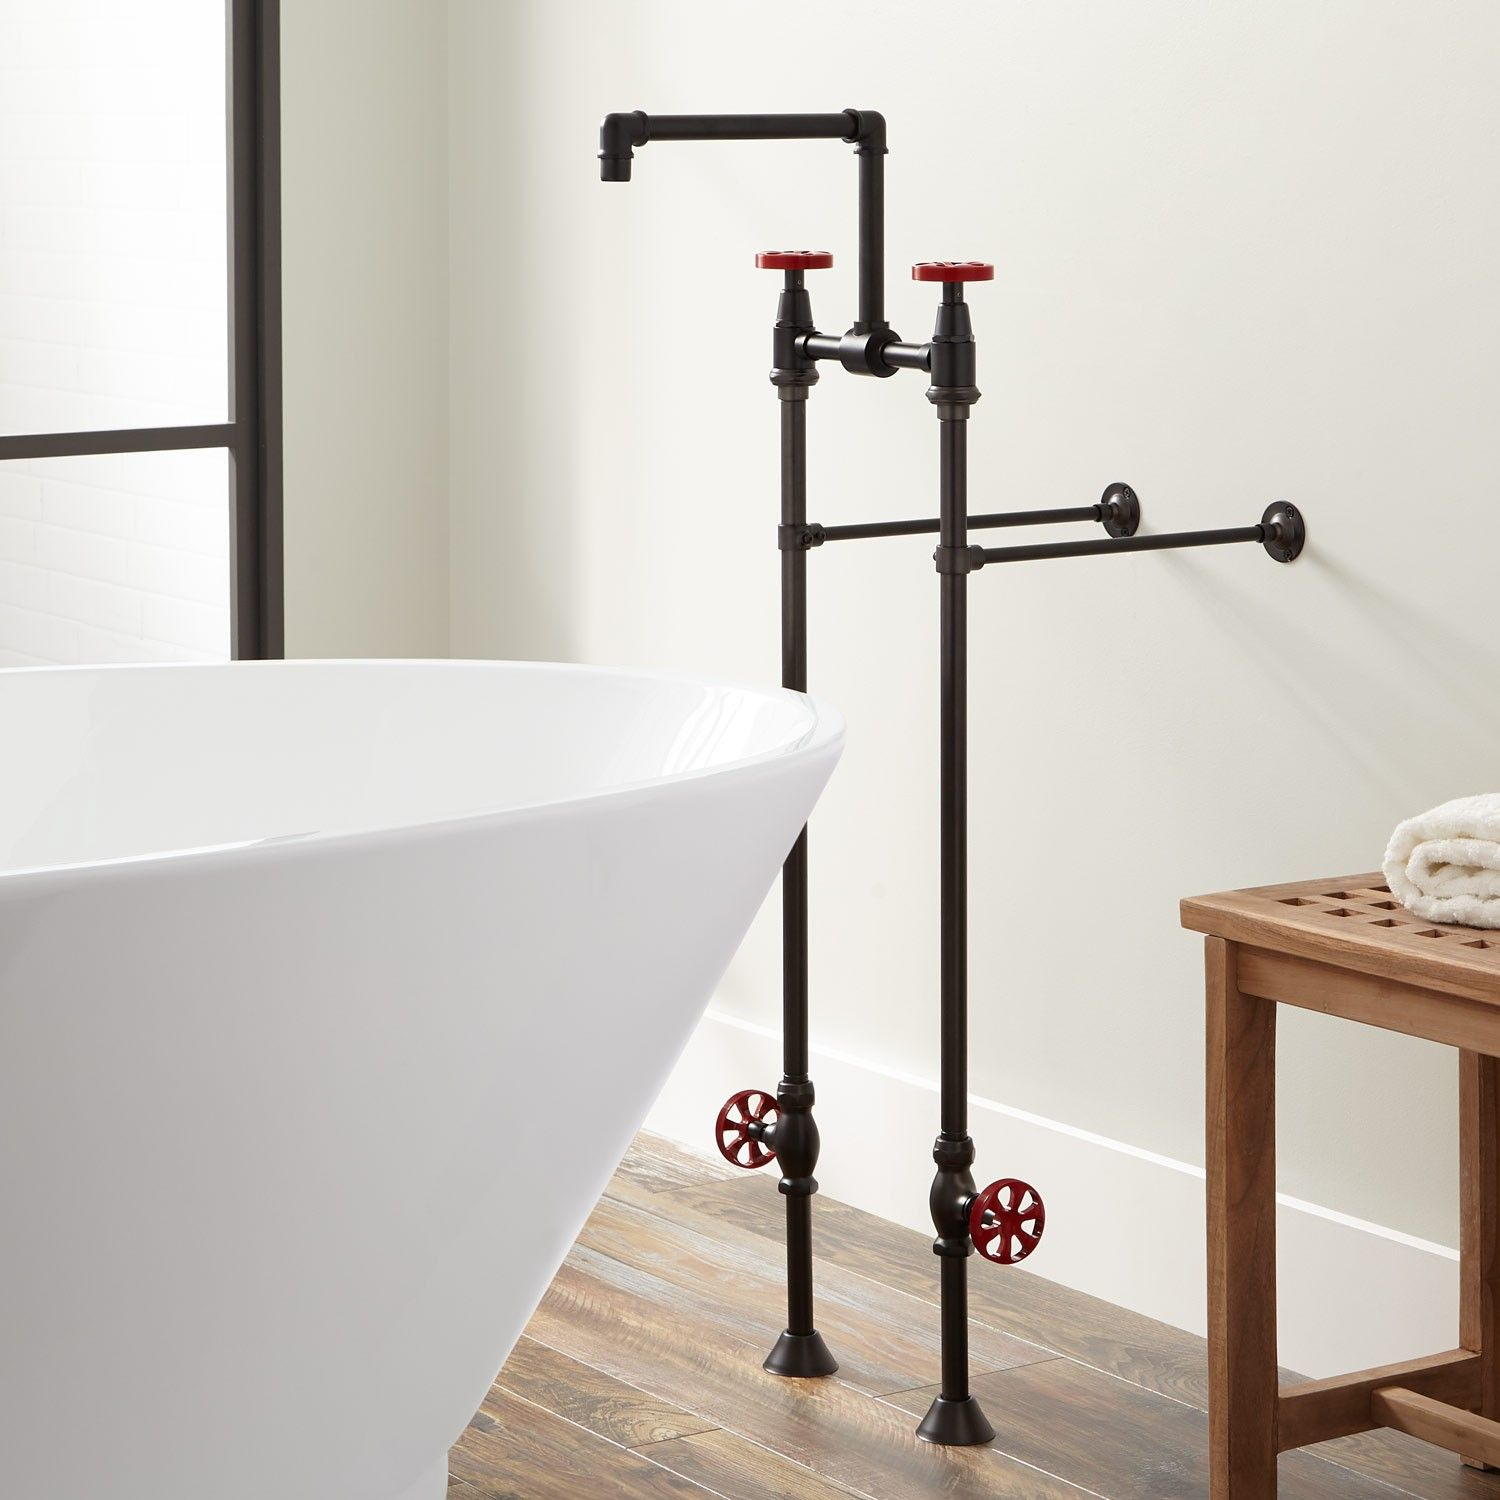 Edison Freestanding Tub Faucet with Shutoff Valves | Freestanding ...